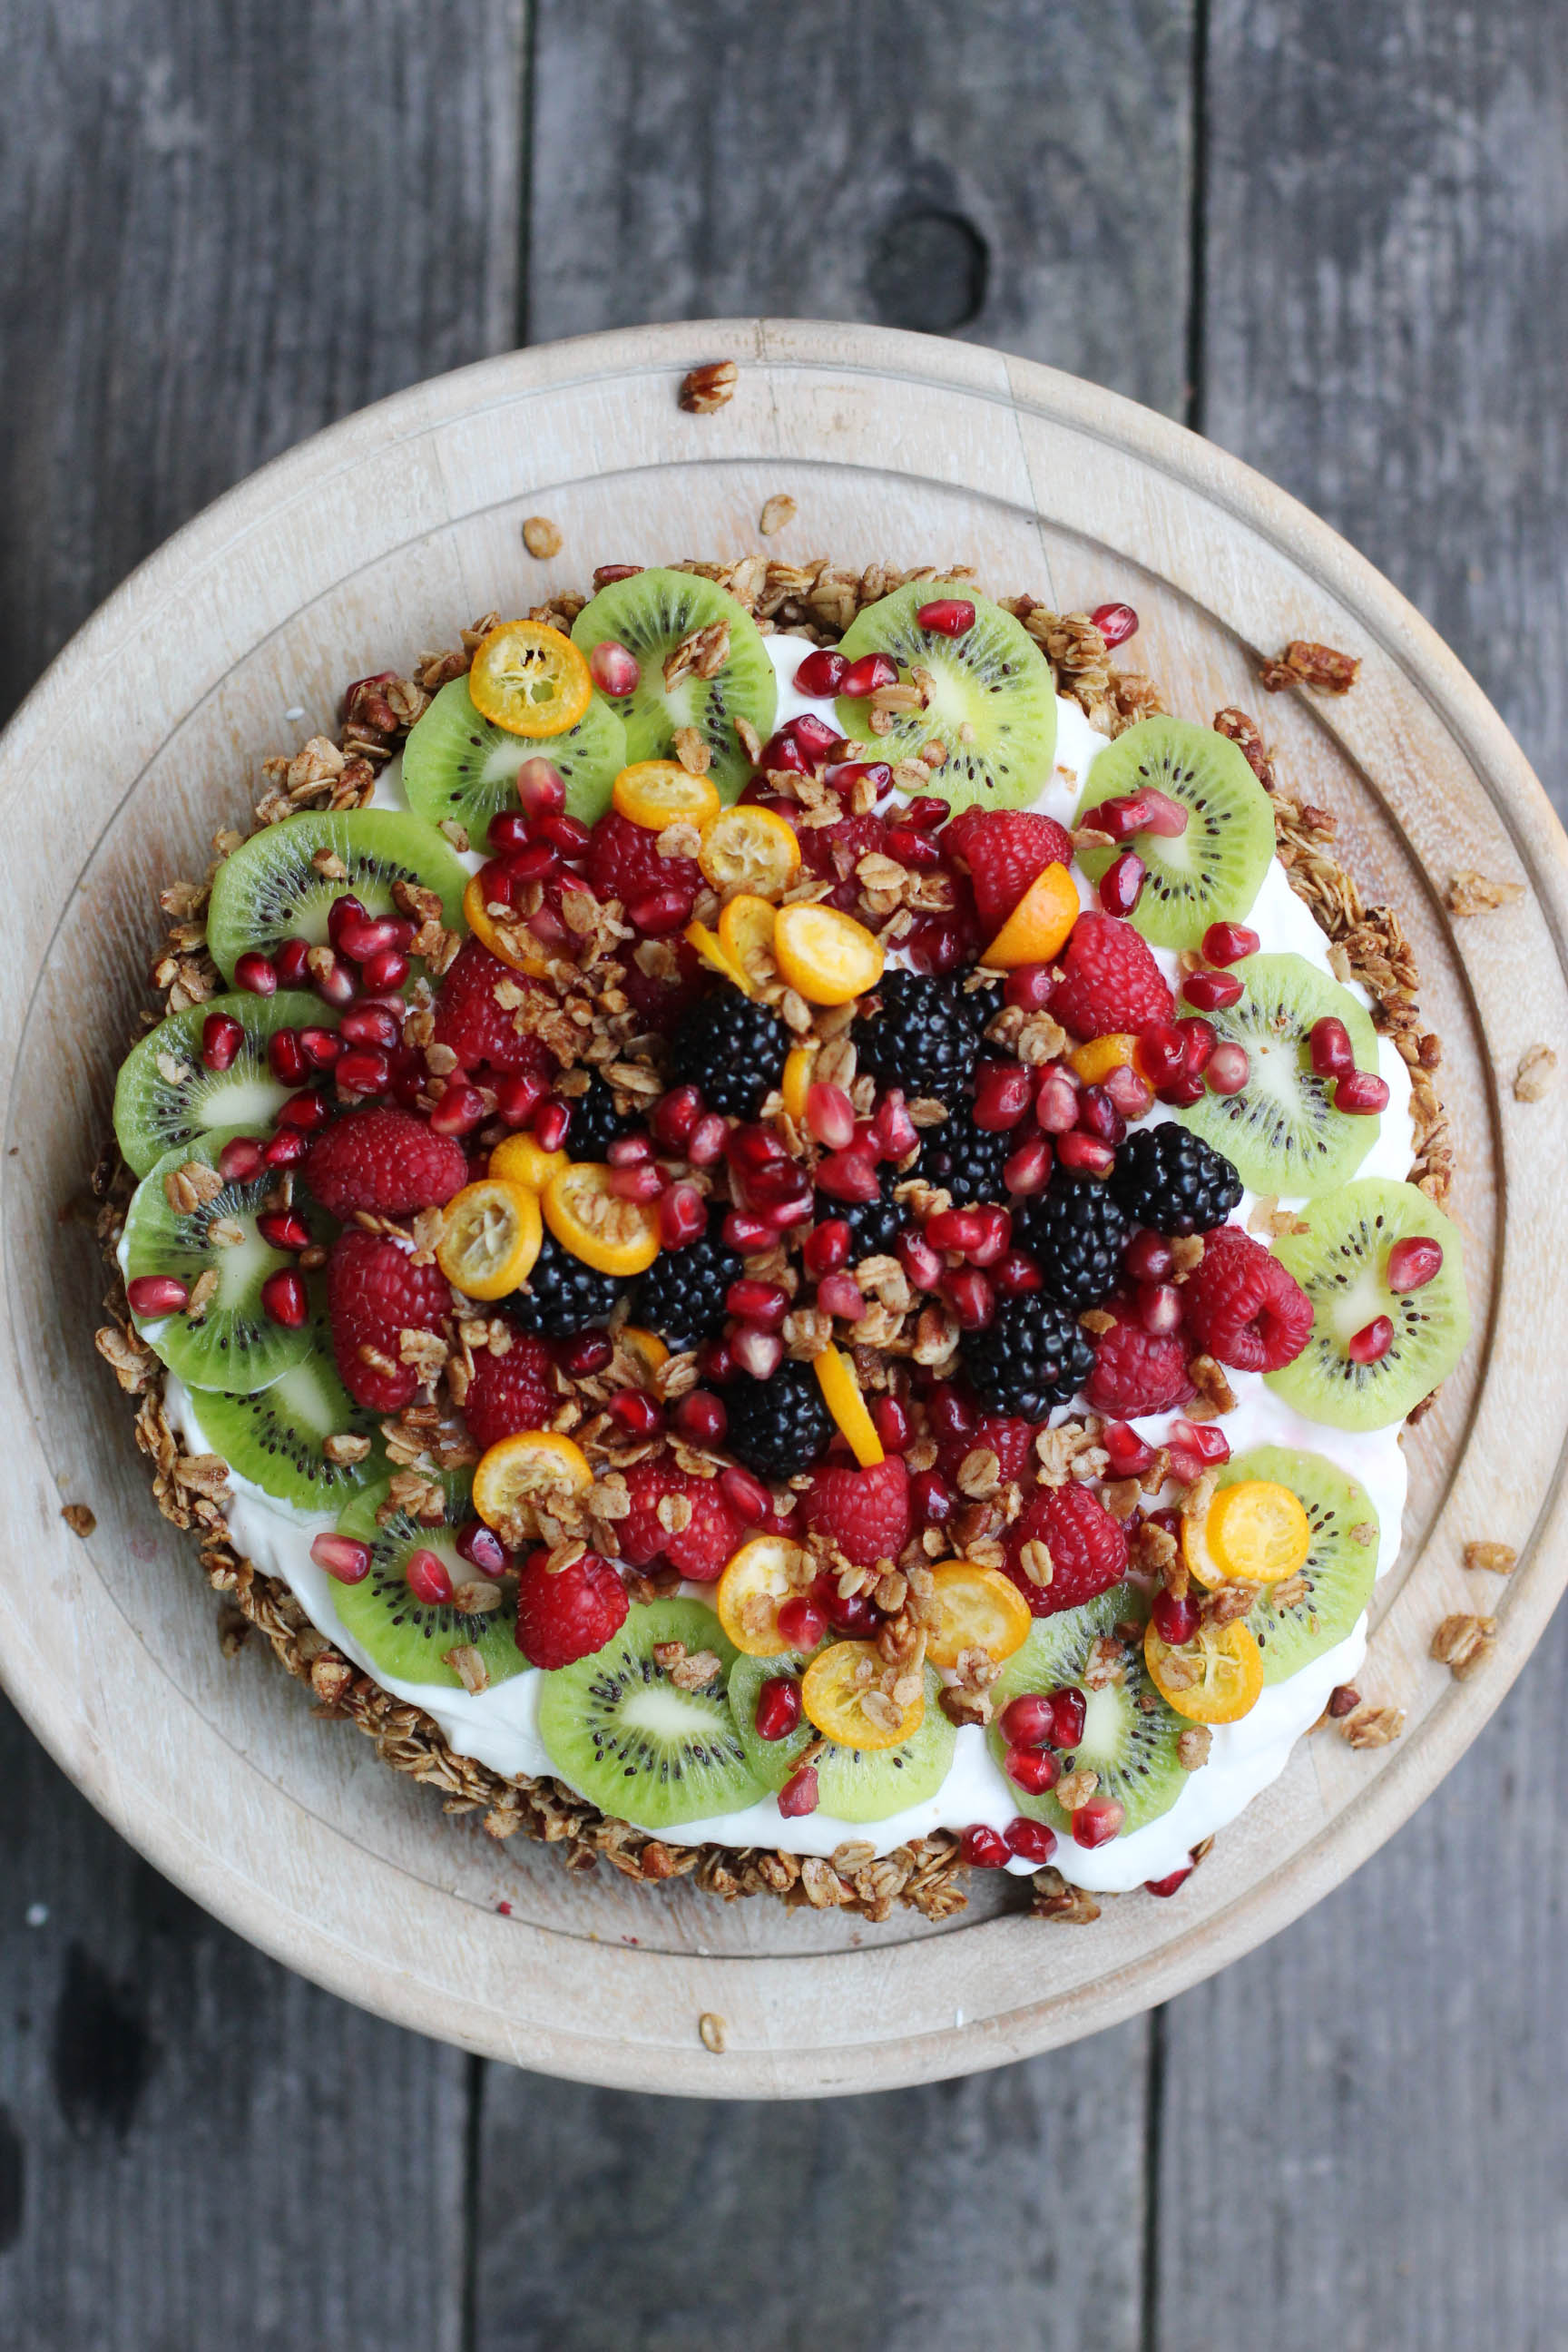 Brunch Recipes for Mother's Day - Granola-Crusted Yogurt Fruit Tart | Honestly Yum